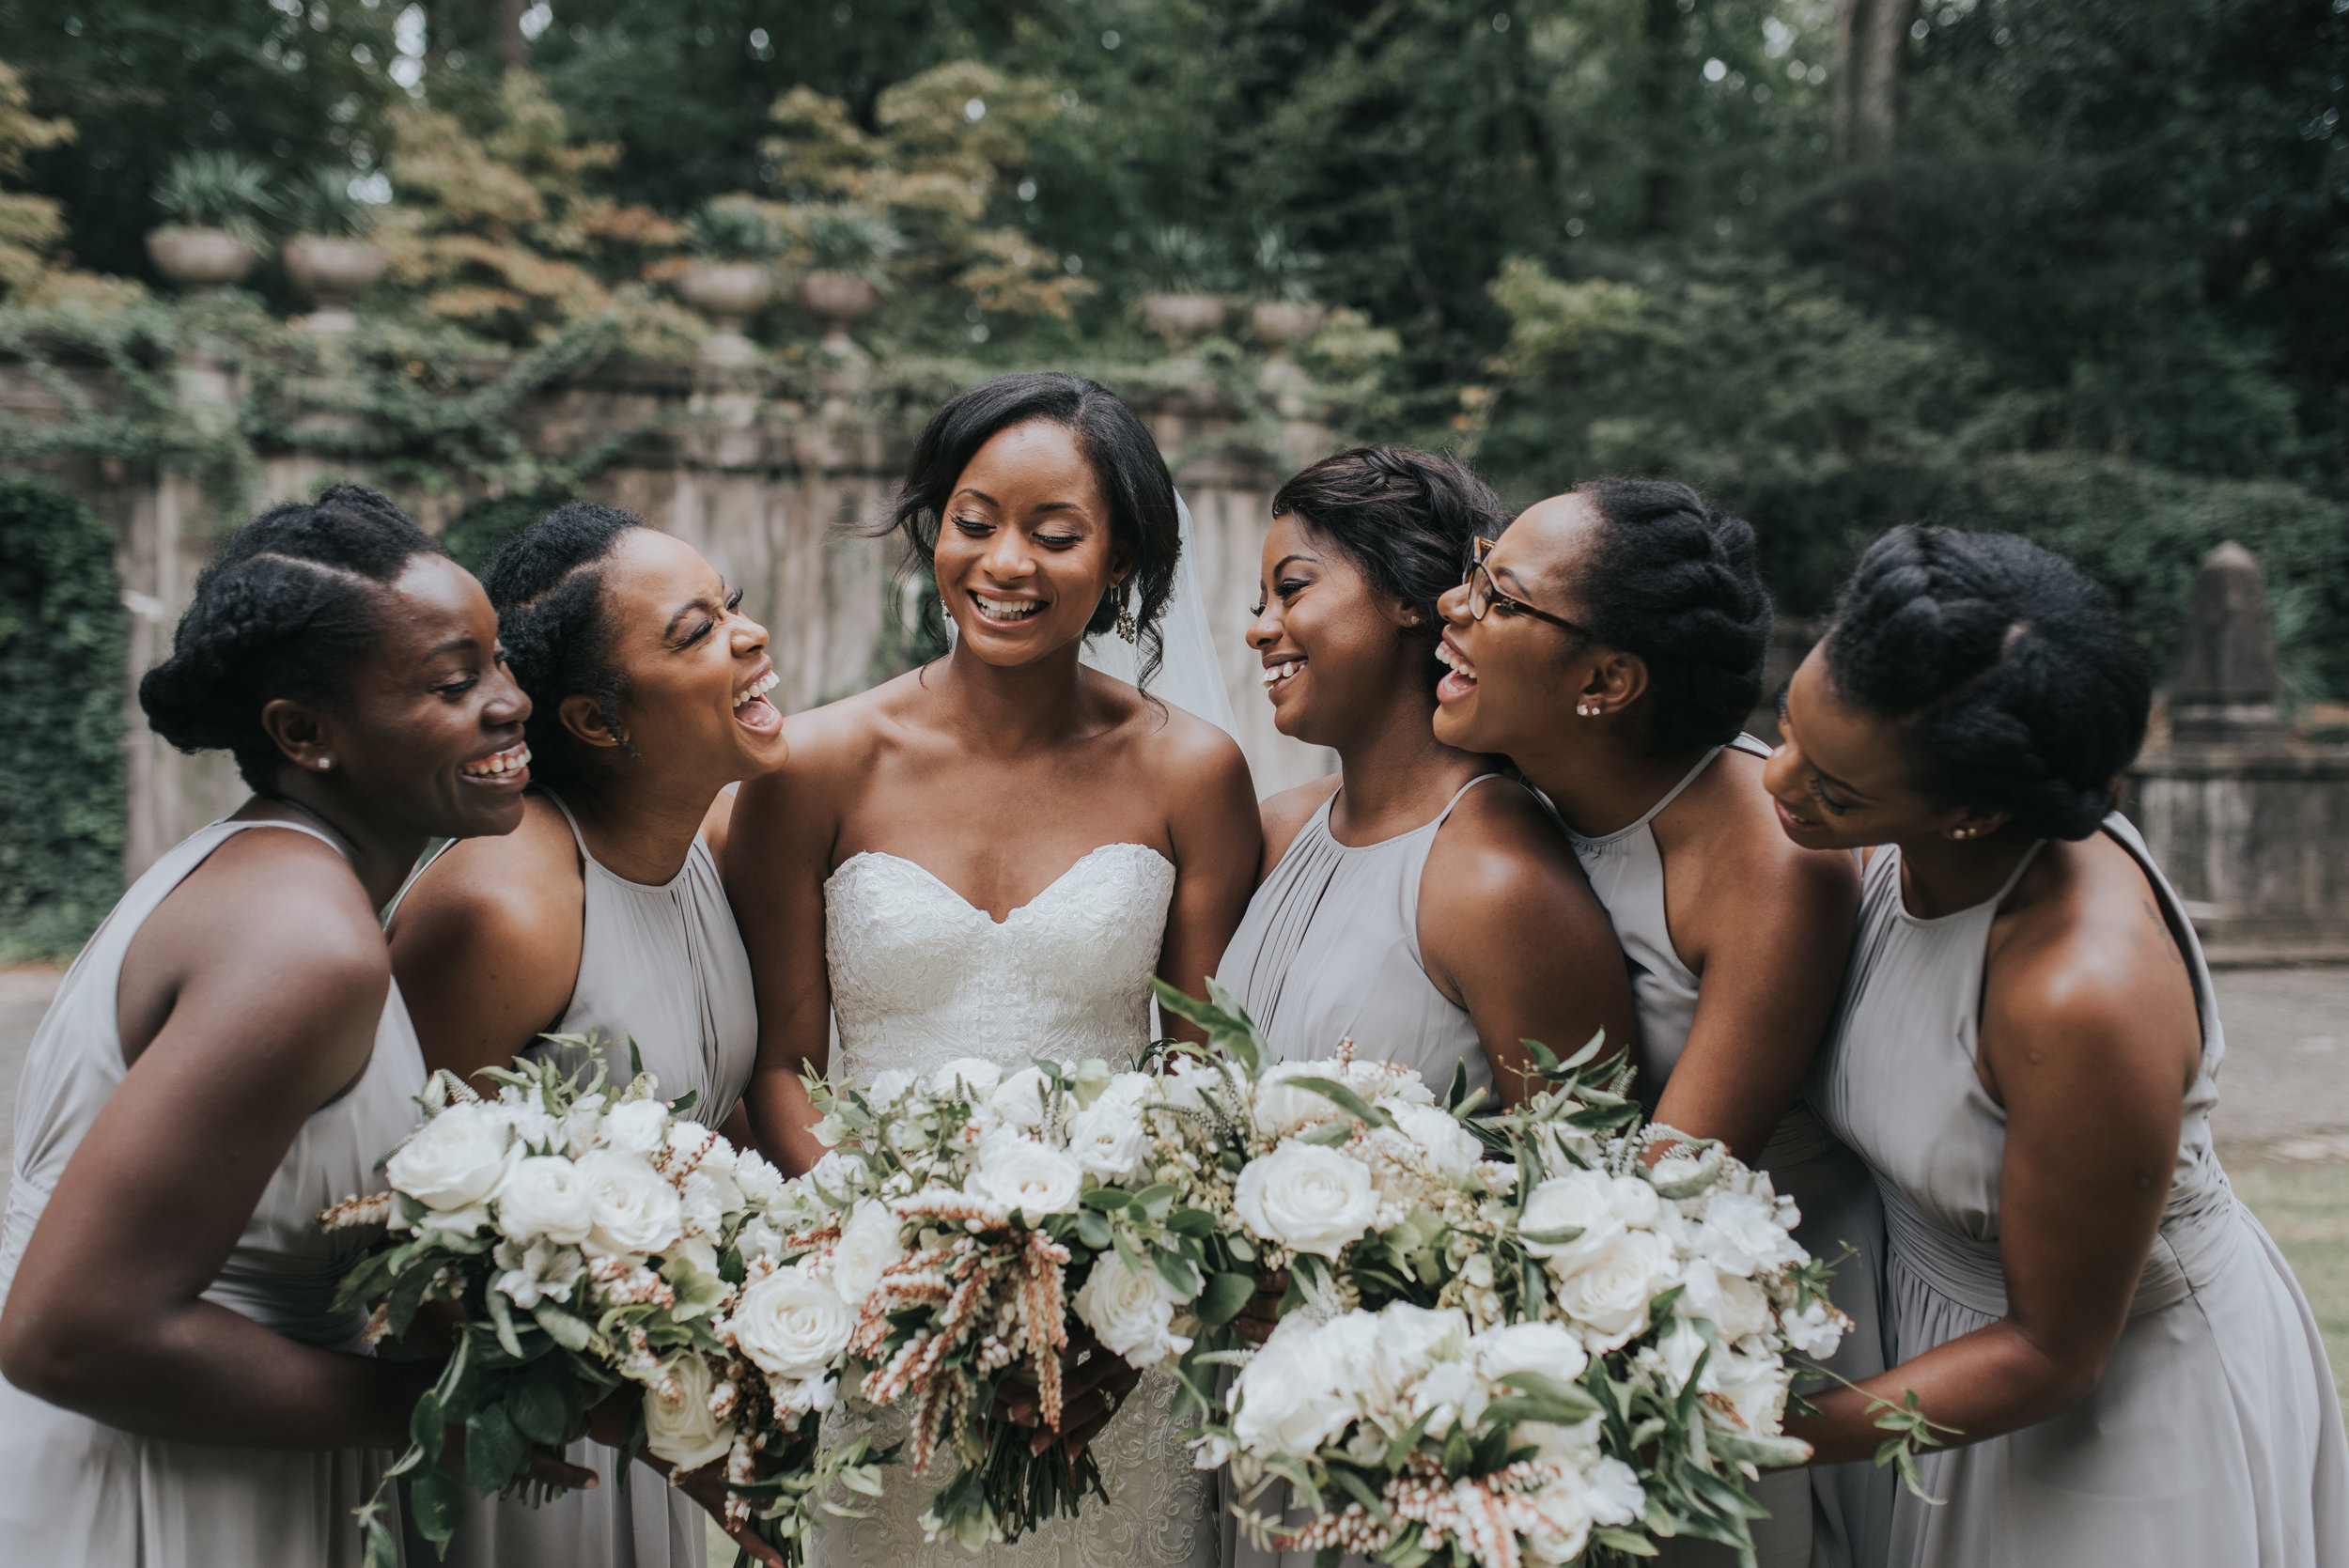 Bridesmaids in gray wedding gowns and eucalyptus bouquets